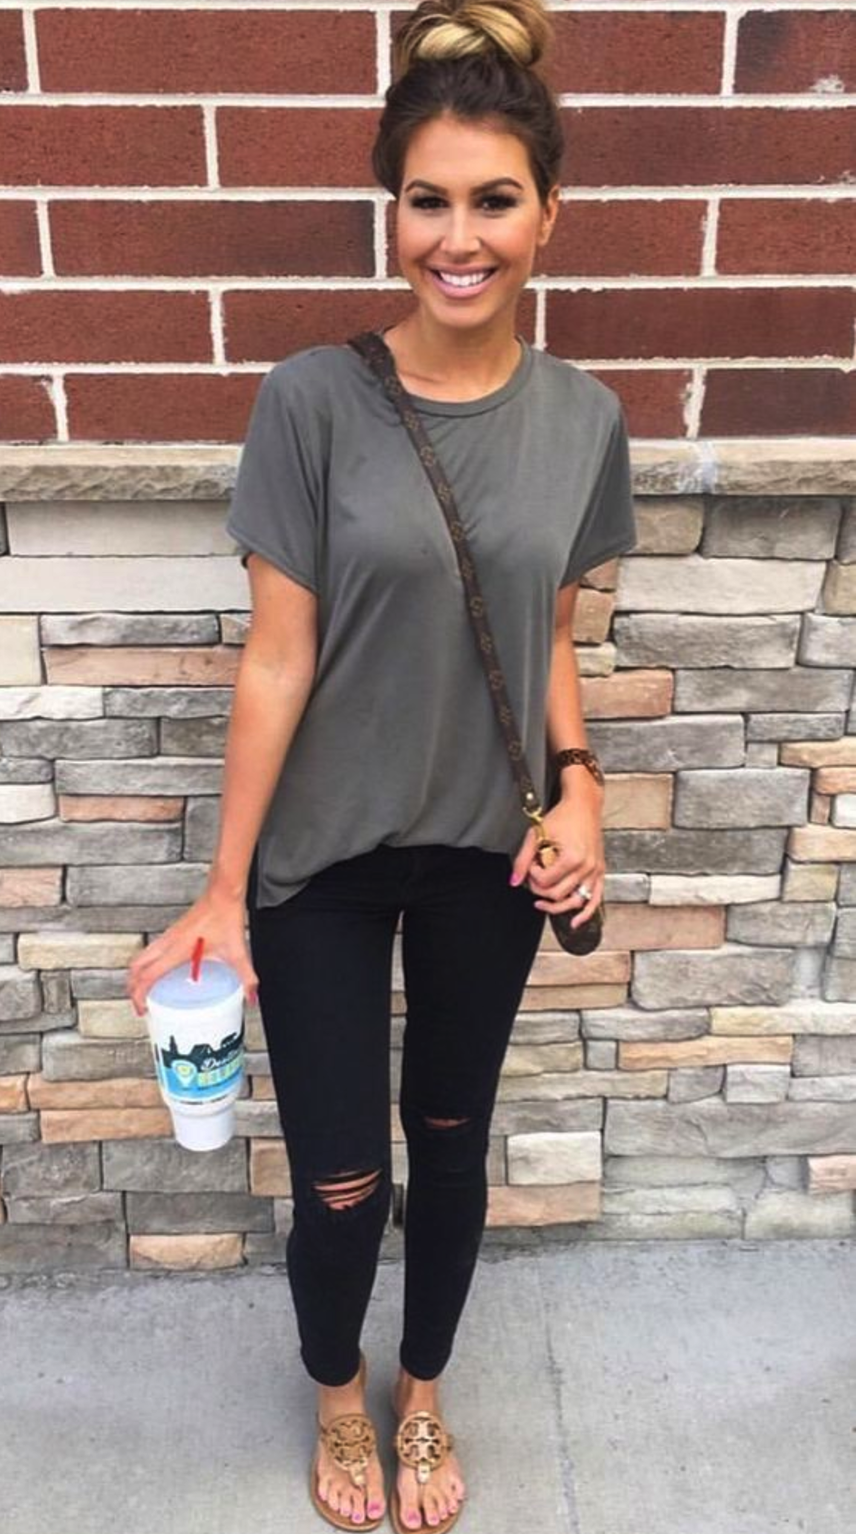 **** Get beautiful looks like this one today from Stitch Fix delivered right to your door! Love the simplicity of this outfit - black skinnies and a great fitting grey tee! Stitch Fix Spring, Stitch Fix Summer, Stitch Fix Fall 2016 2017. Stitch Fix Spring Summer Fall Fashion. #StitchFix #Affiliate #StitchFixInfluencer #stitchfix